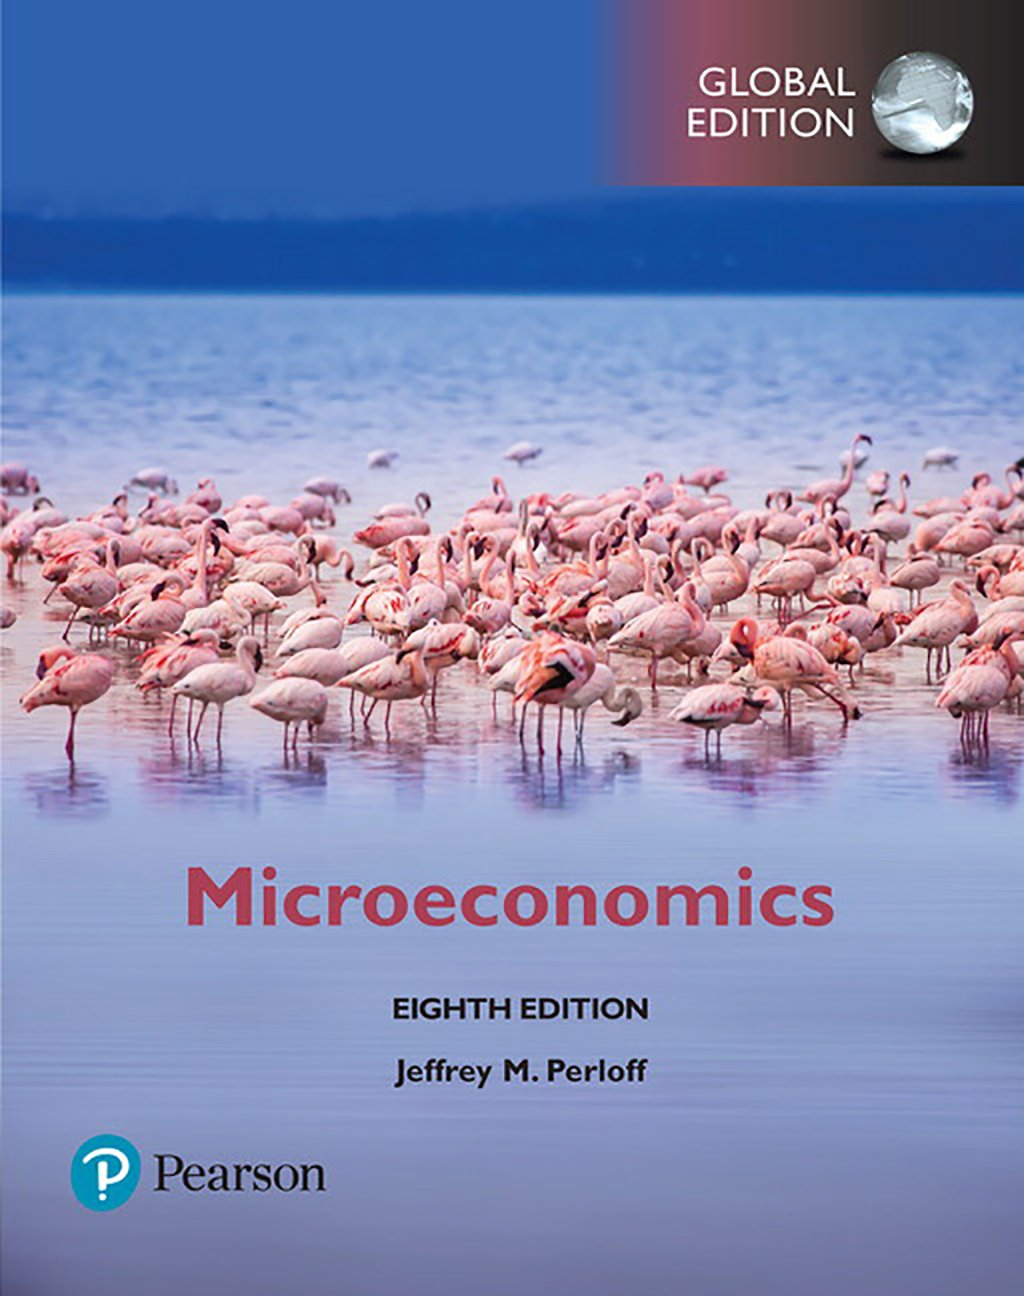 Microeconomics, Global Edition MyLab Economics, 8th Edition